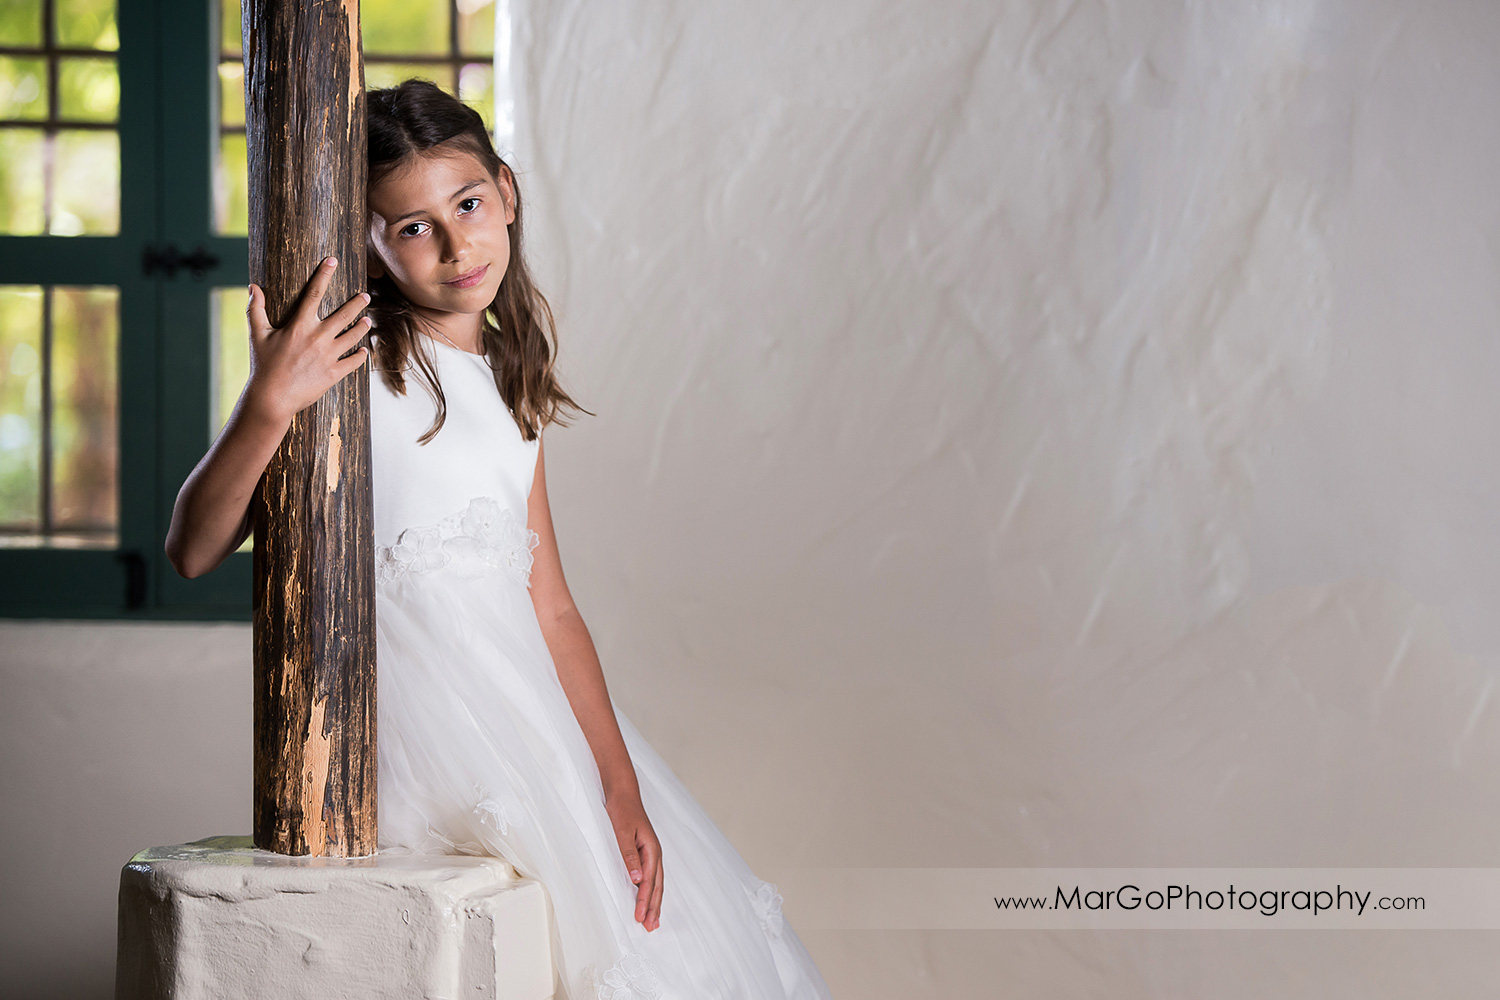 portrait of first communion girl in white dress resting on wooden pole at Cafe Wisteria in Menlo Park